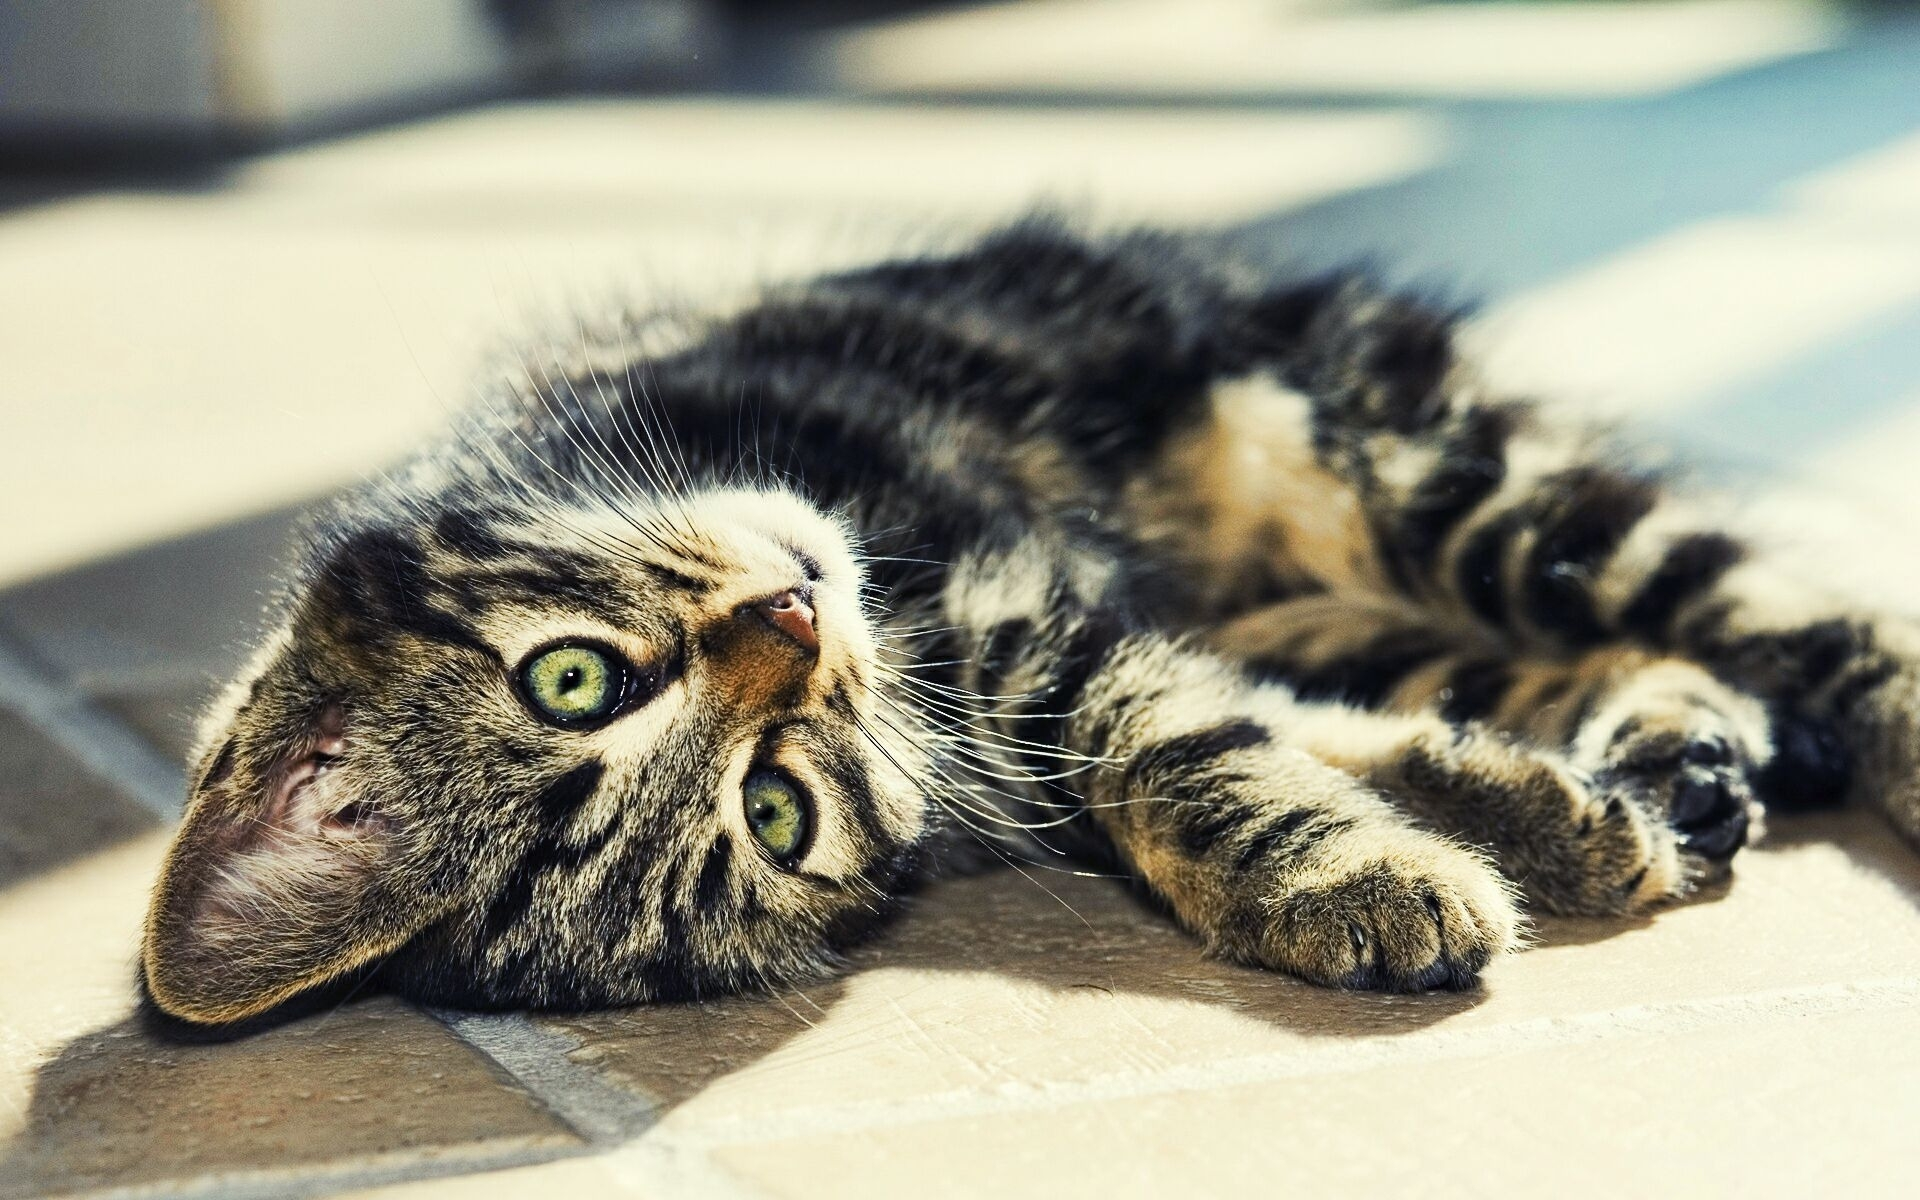 50126 download wallpaper Animals, Cats screensavers and pictures for free